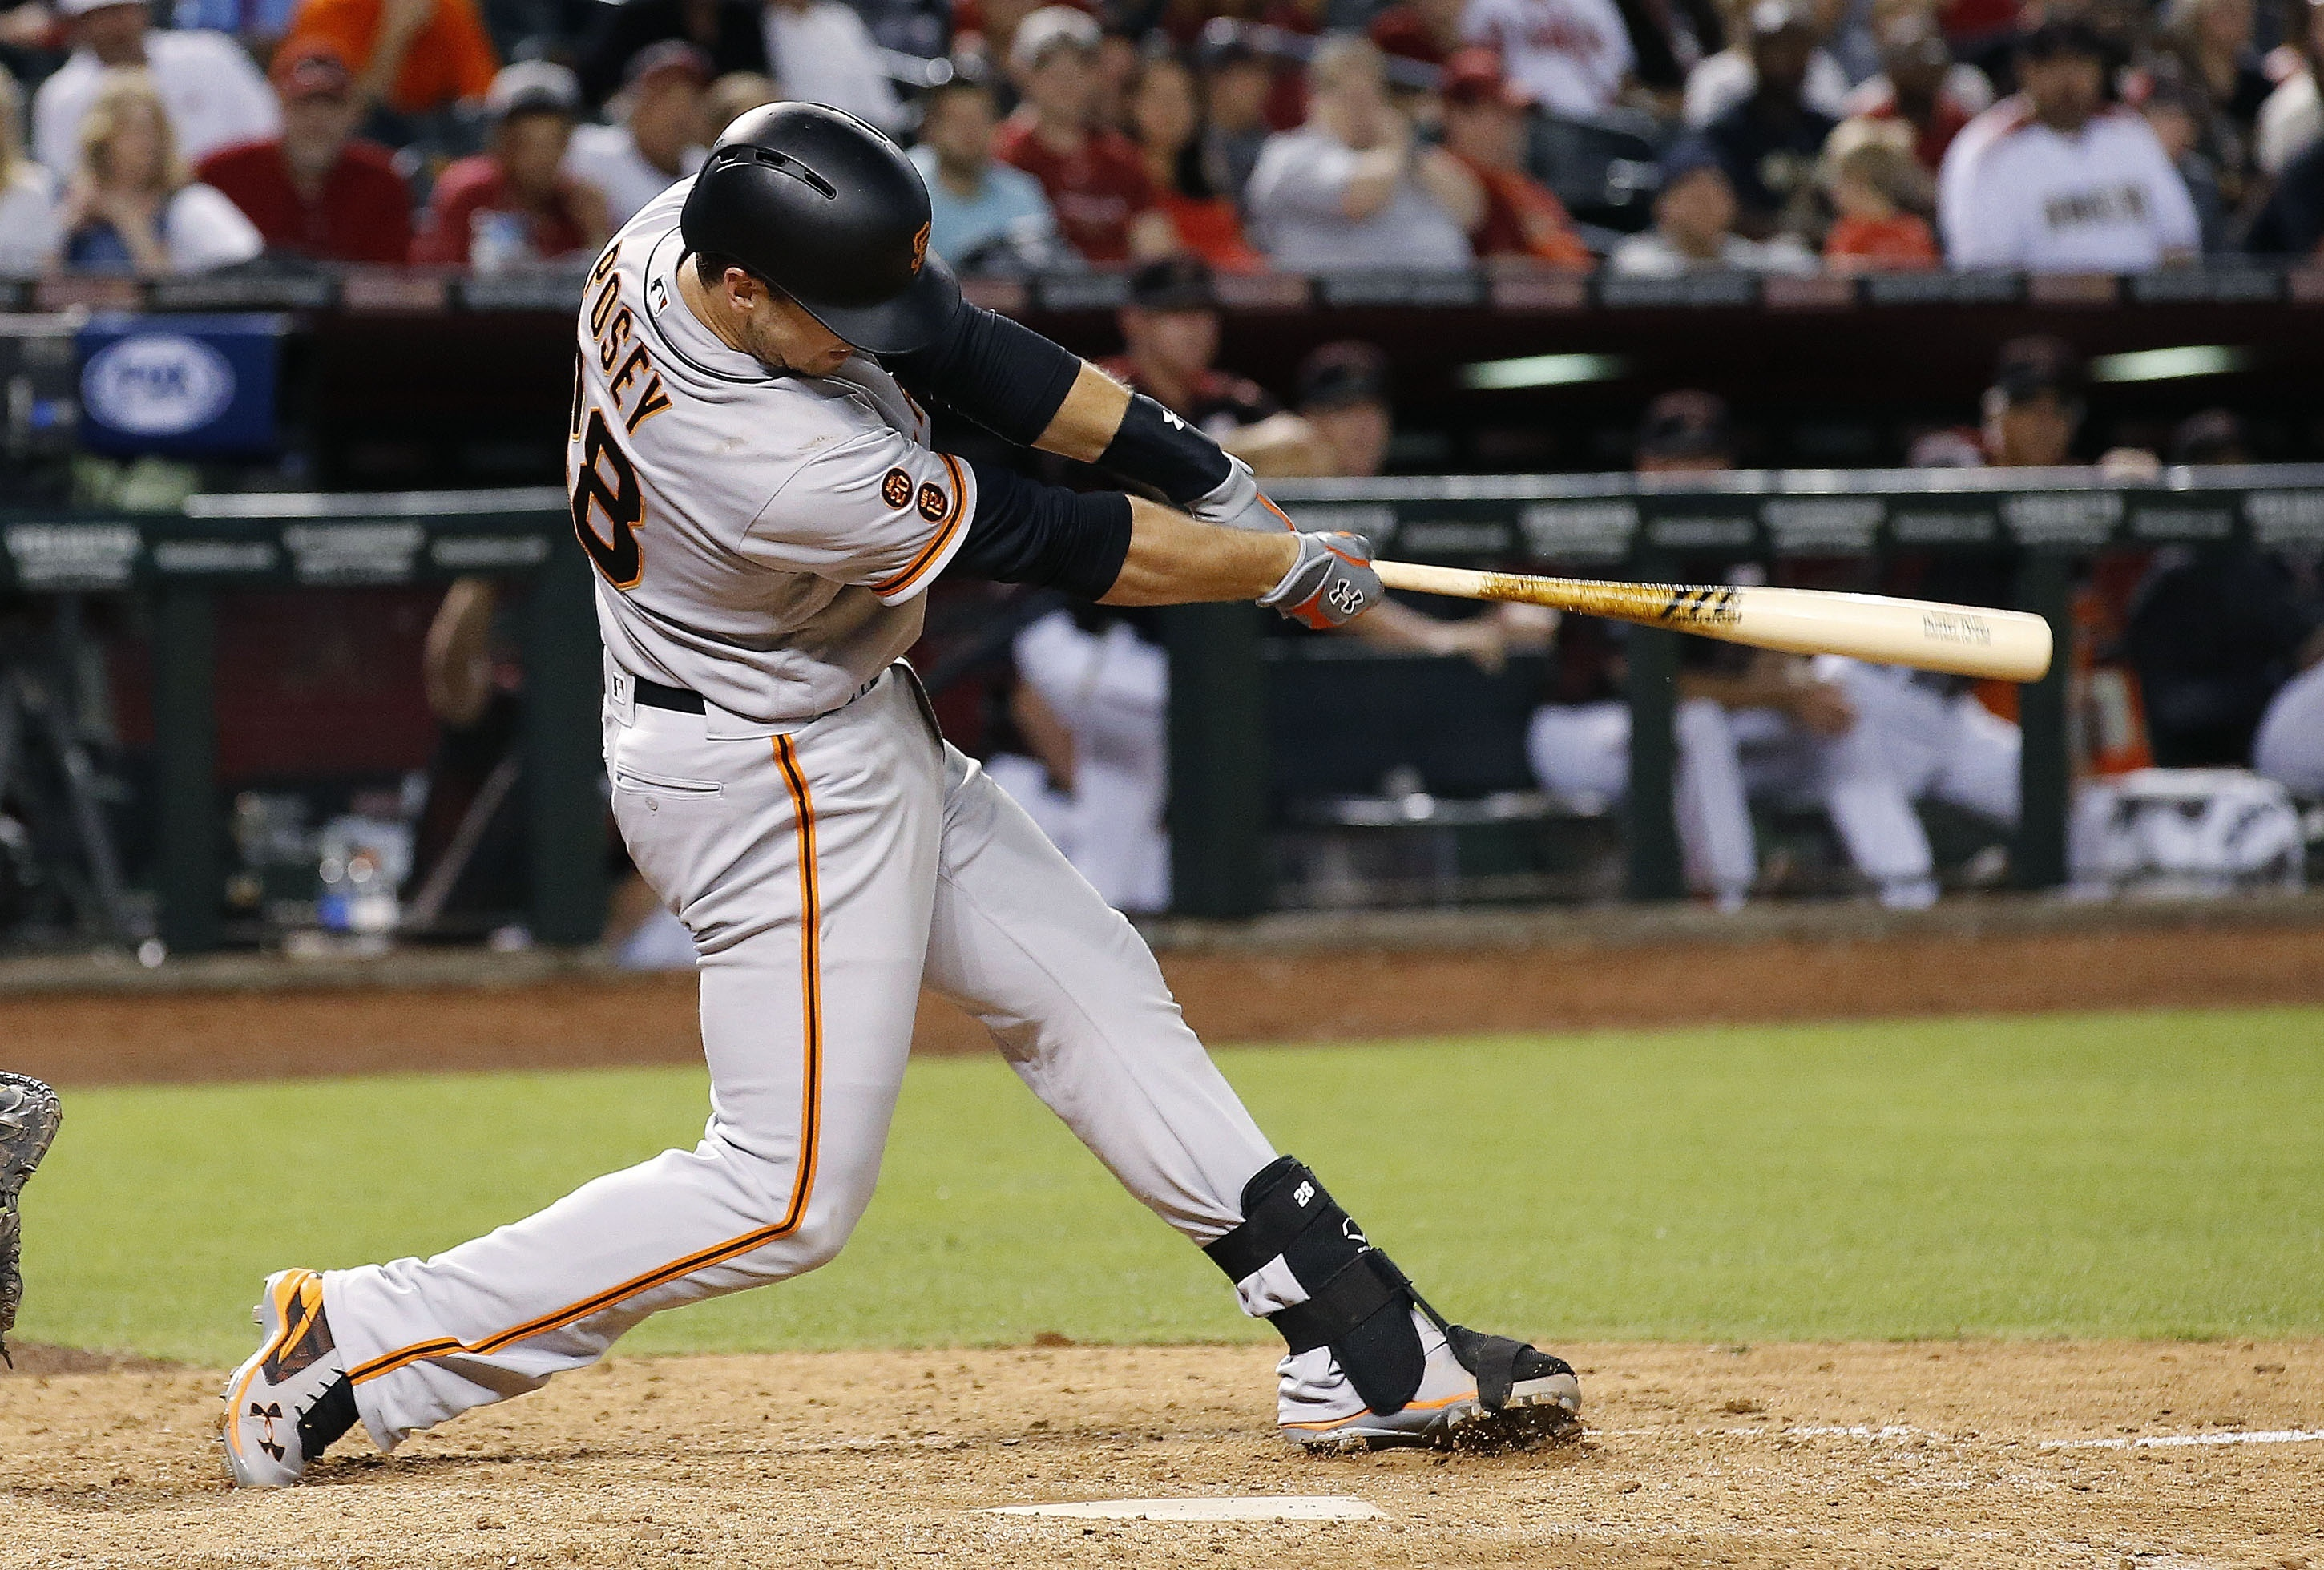 San Francisco Giants' Buster Posey connects for a two-run double against the Arizona Diamondbacks during the ninth inning of a baseball game Saturday, May 14, 2016, in Phoenix. (AP Photo/Ross D. Franklin)